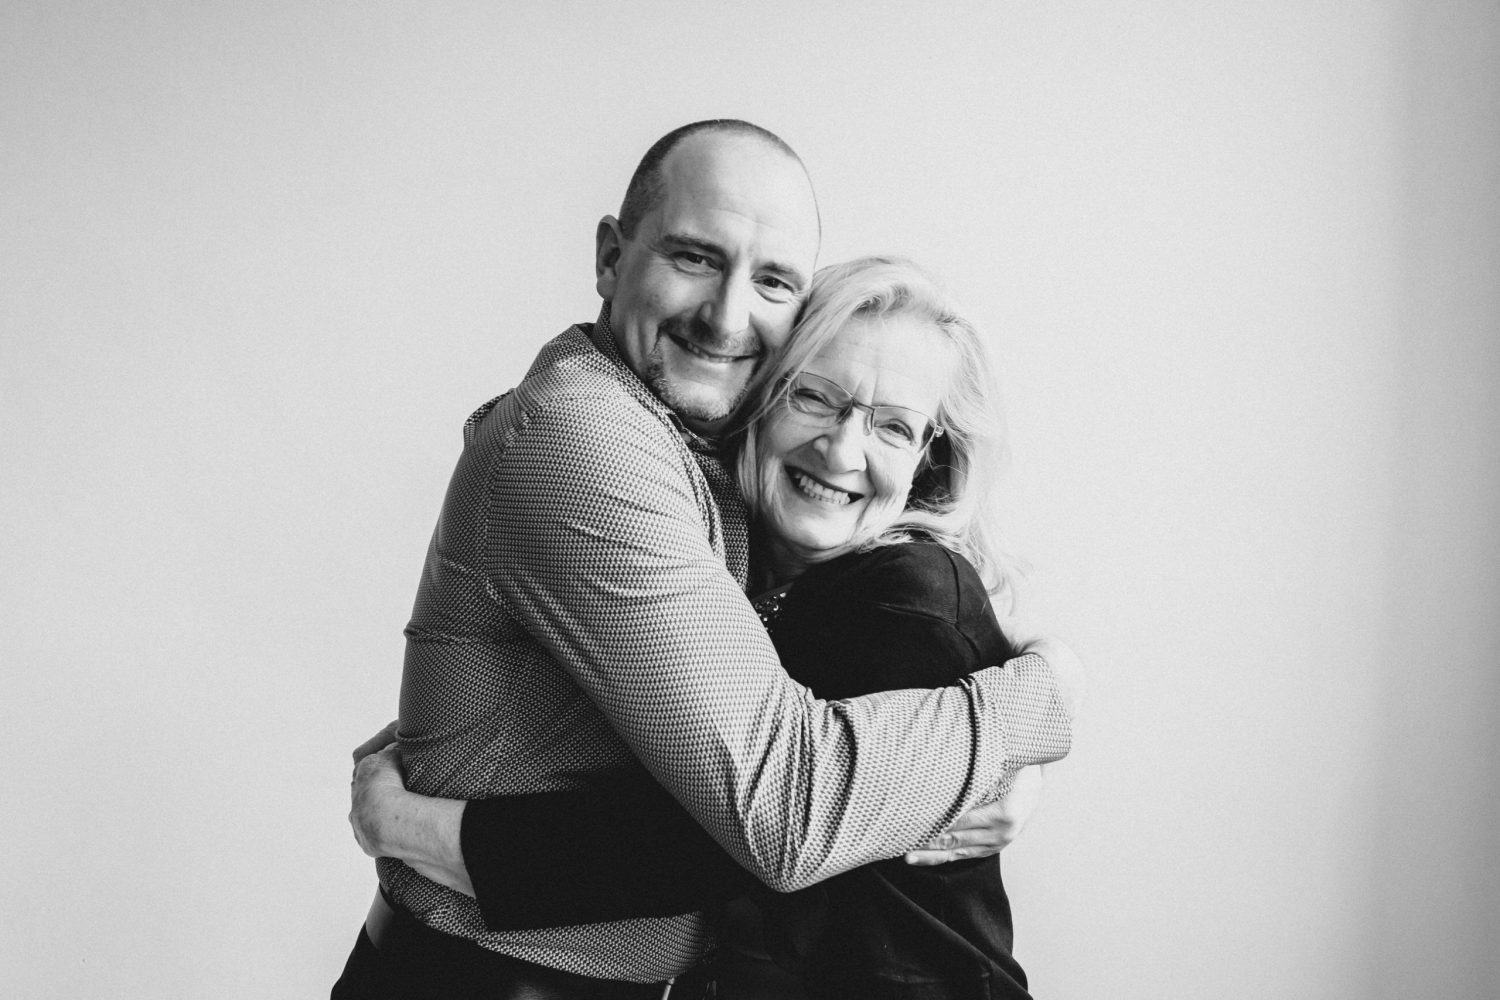 mother and son hugging at family photoshoot for 50th wedding anniversary in peterborough, ontario by peterborough family photographer heather doughty photography